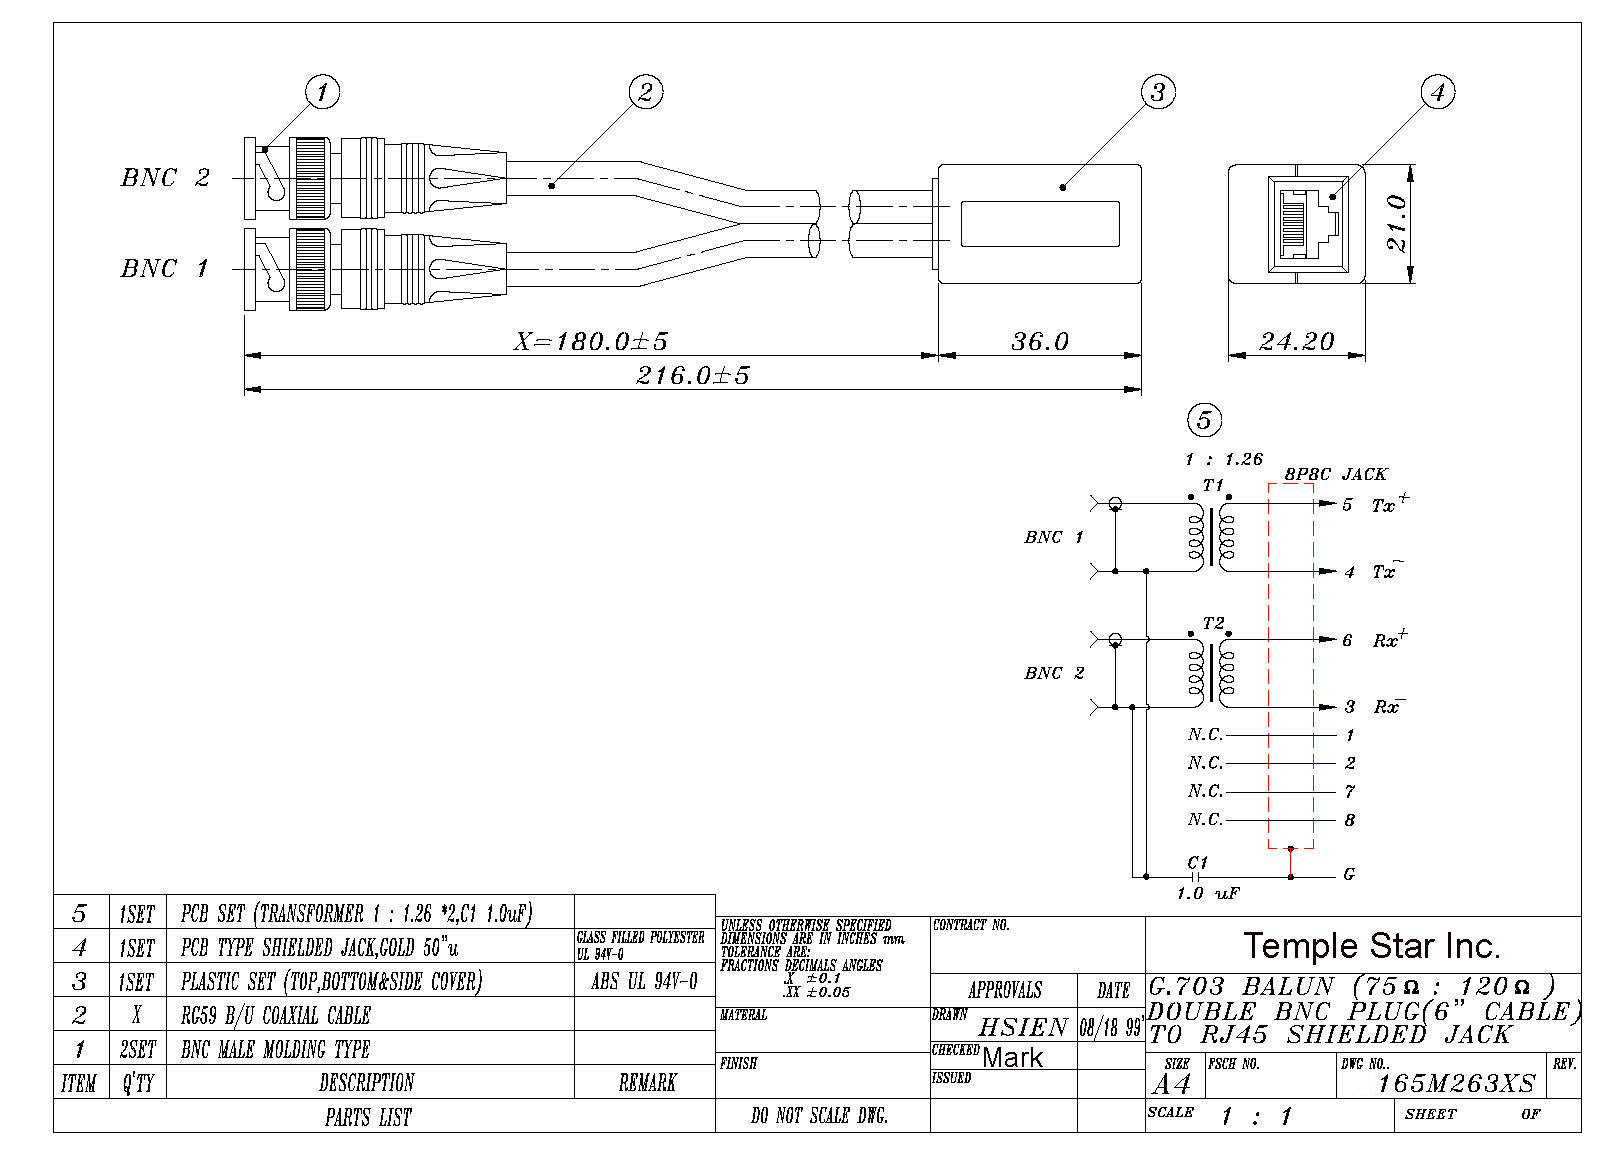 Ts10zme 2p 6 Pin Din Wire Diagram - Ford F350 Stereo Wiring   Bege Wiring  Diagram   Ts10zme 2p 6 Pin Din Wire Diagram      Bege Place Wiring Diagram - Bege Wiring Diagram